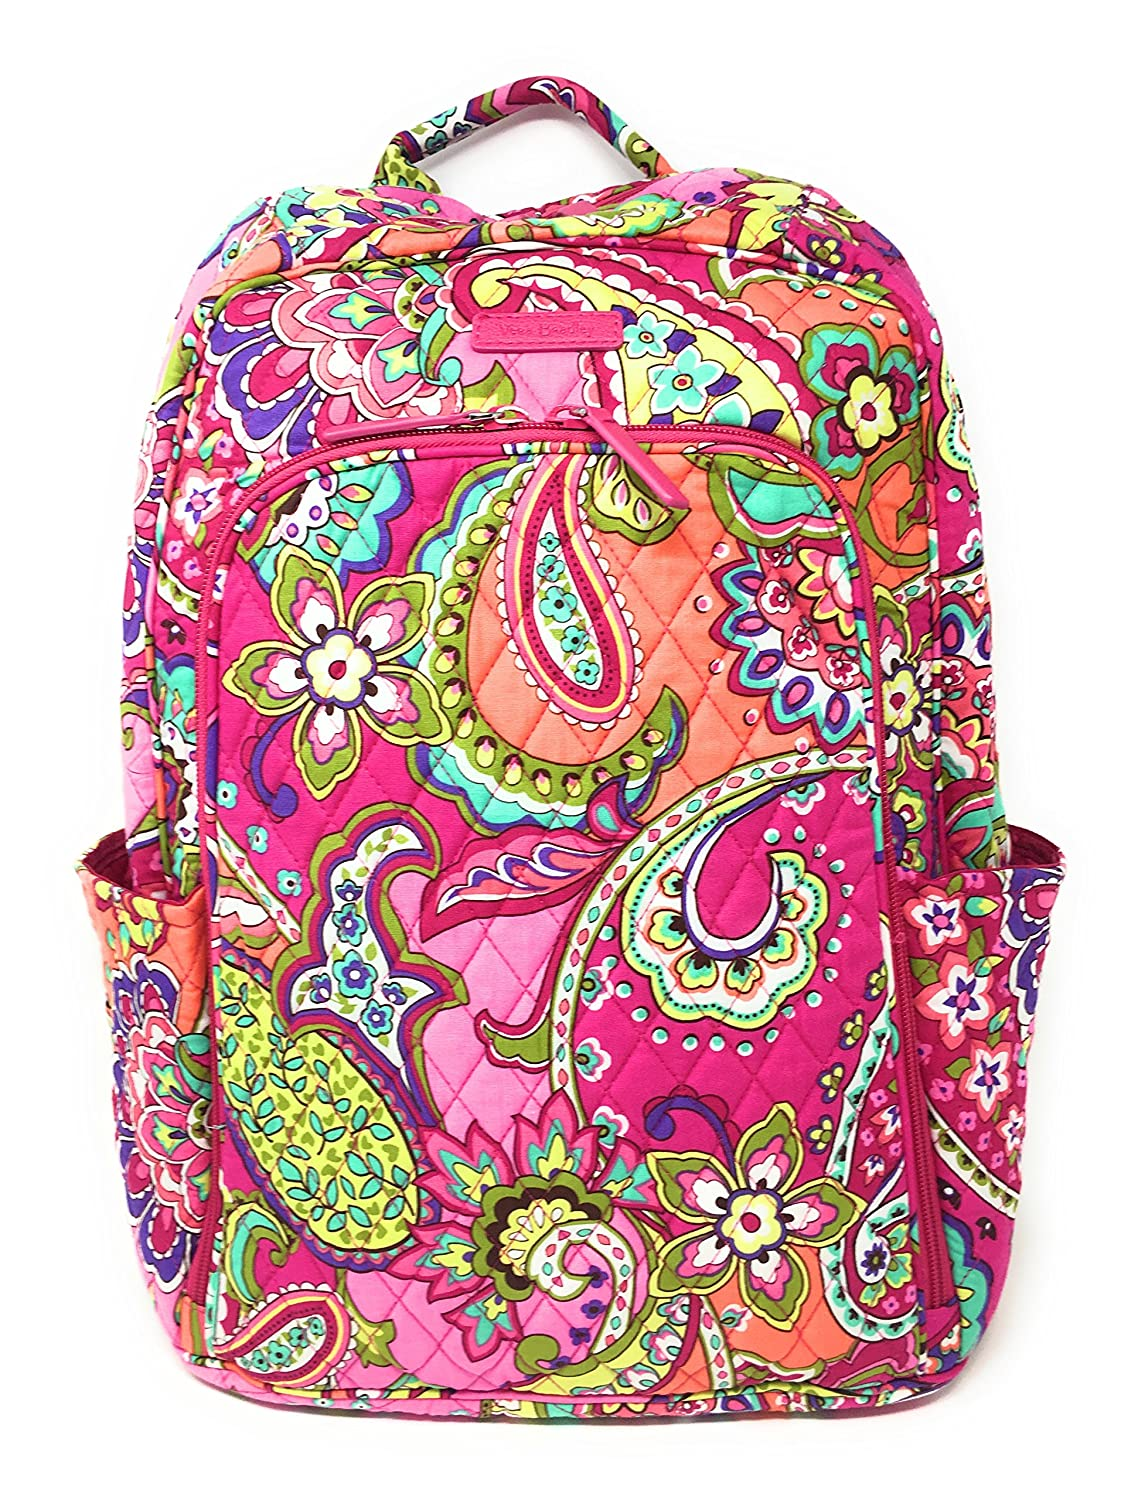 Vera Bradley Laptop Backpack Updated Version with Solid Color Interiors  Pink Swirls with Pink Interiors  Amazon.in  Bags 310d94e0250ff